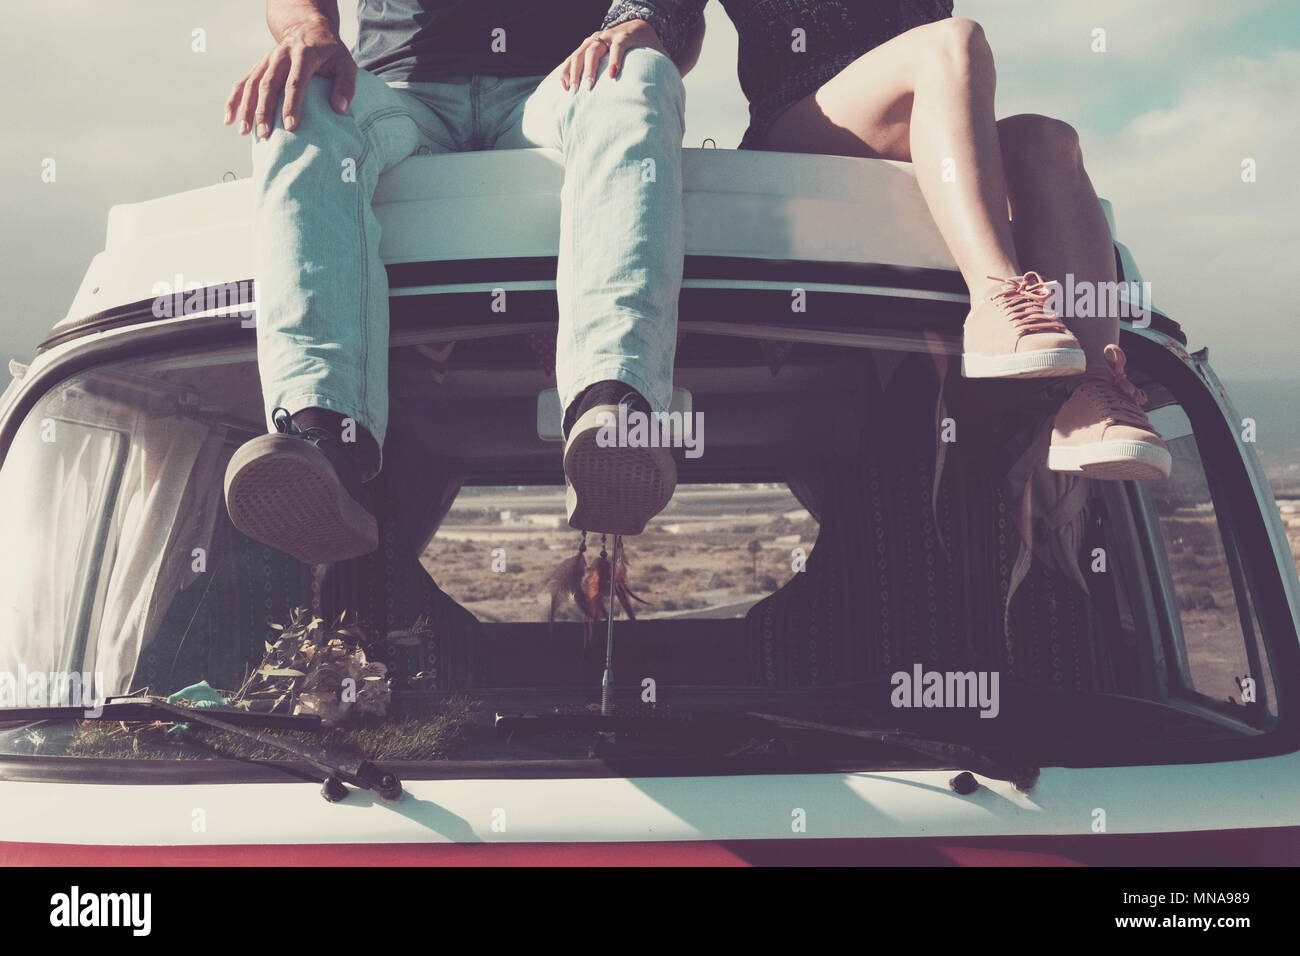 enjoy the vanlife. two pair of young legs sitted on the top of a vintage retro van enjoying the day. travel and discover new places like a desert in b - Stock Image